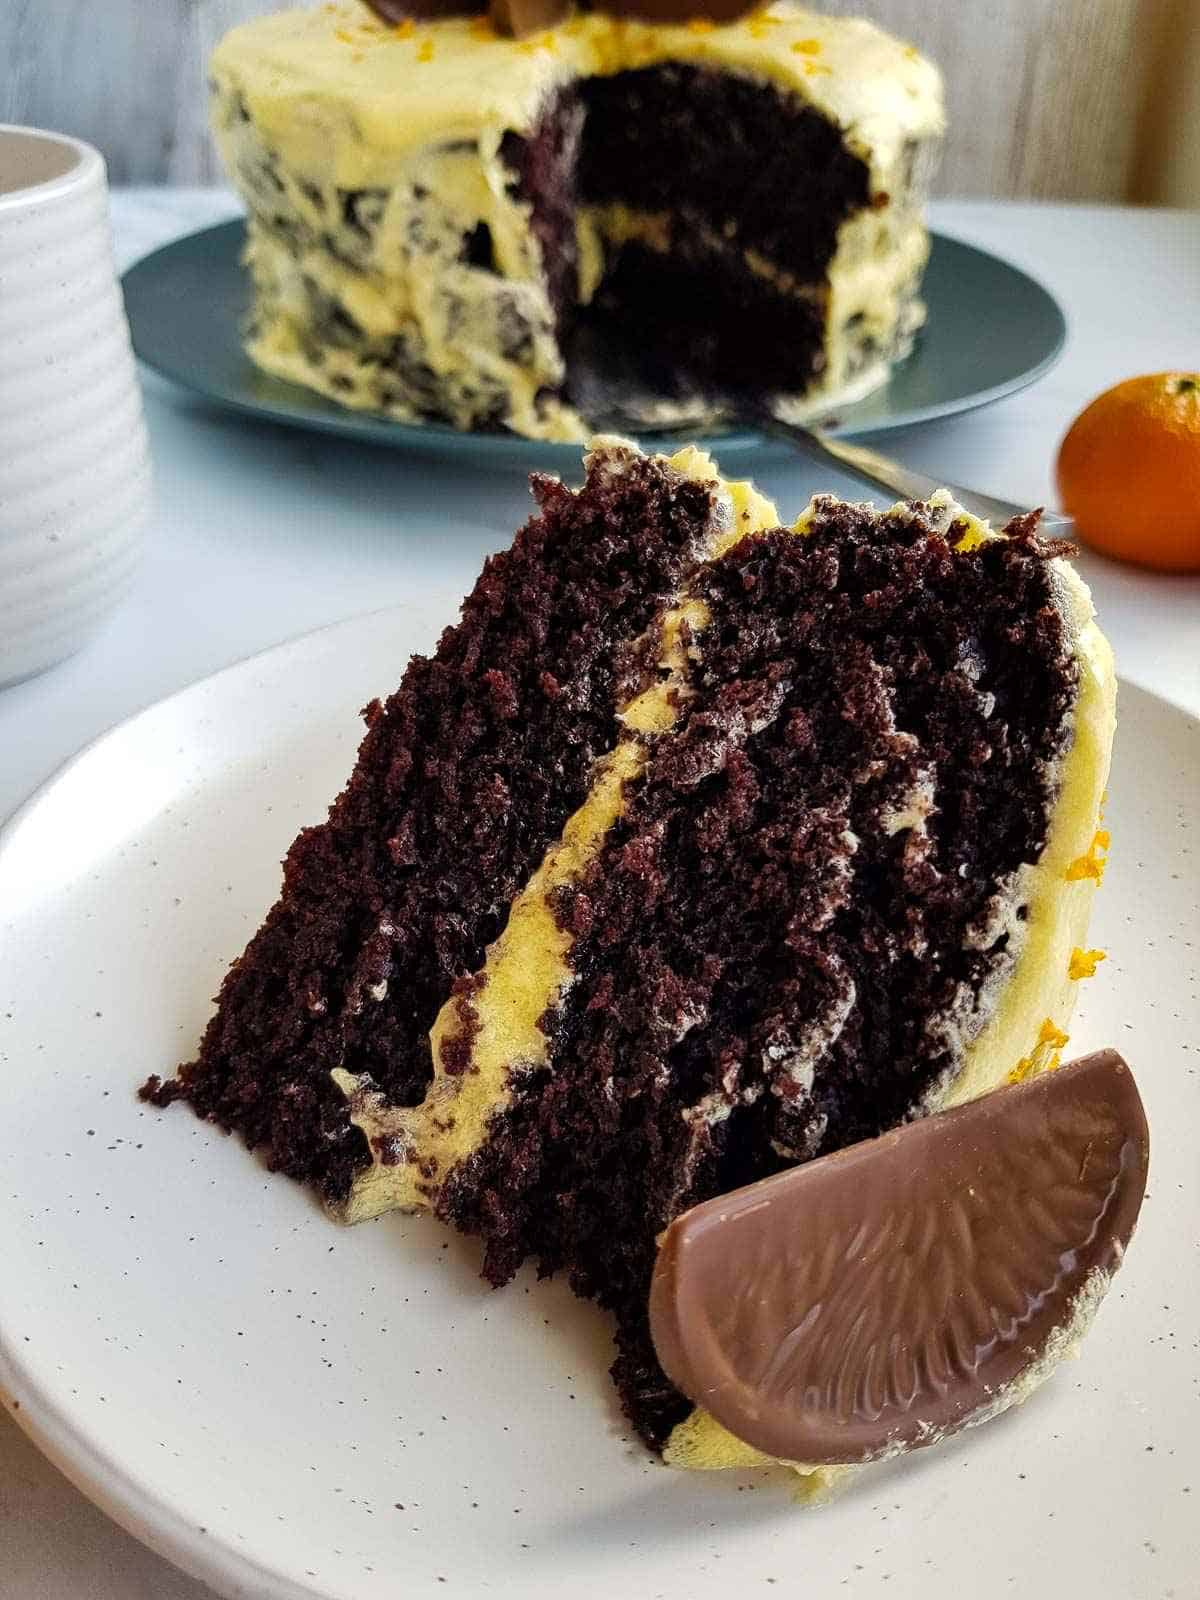 Close up of a slice of chocolate cake with orange frosting.